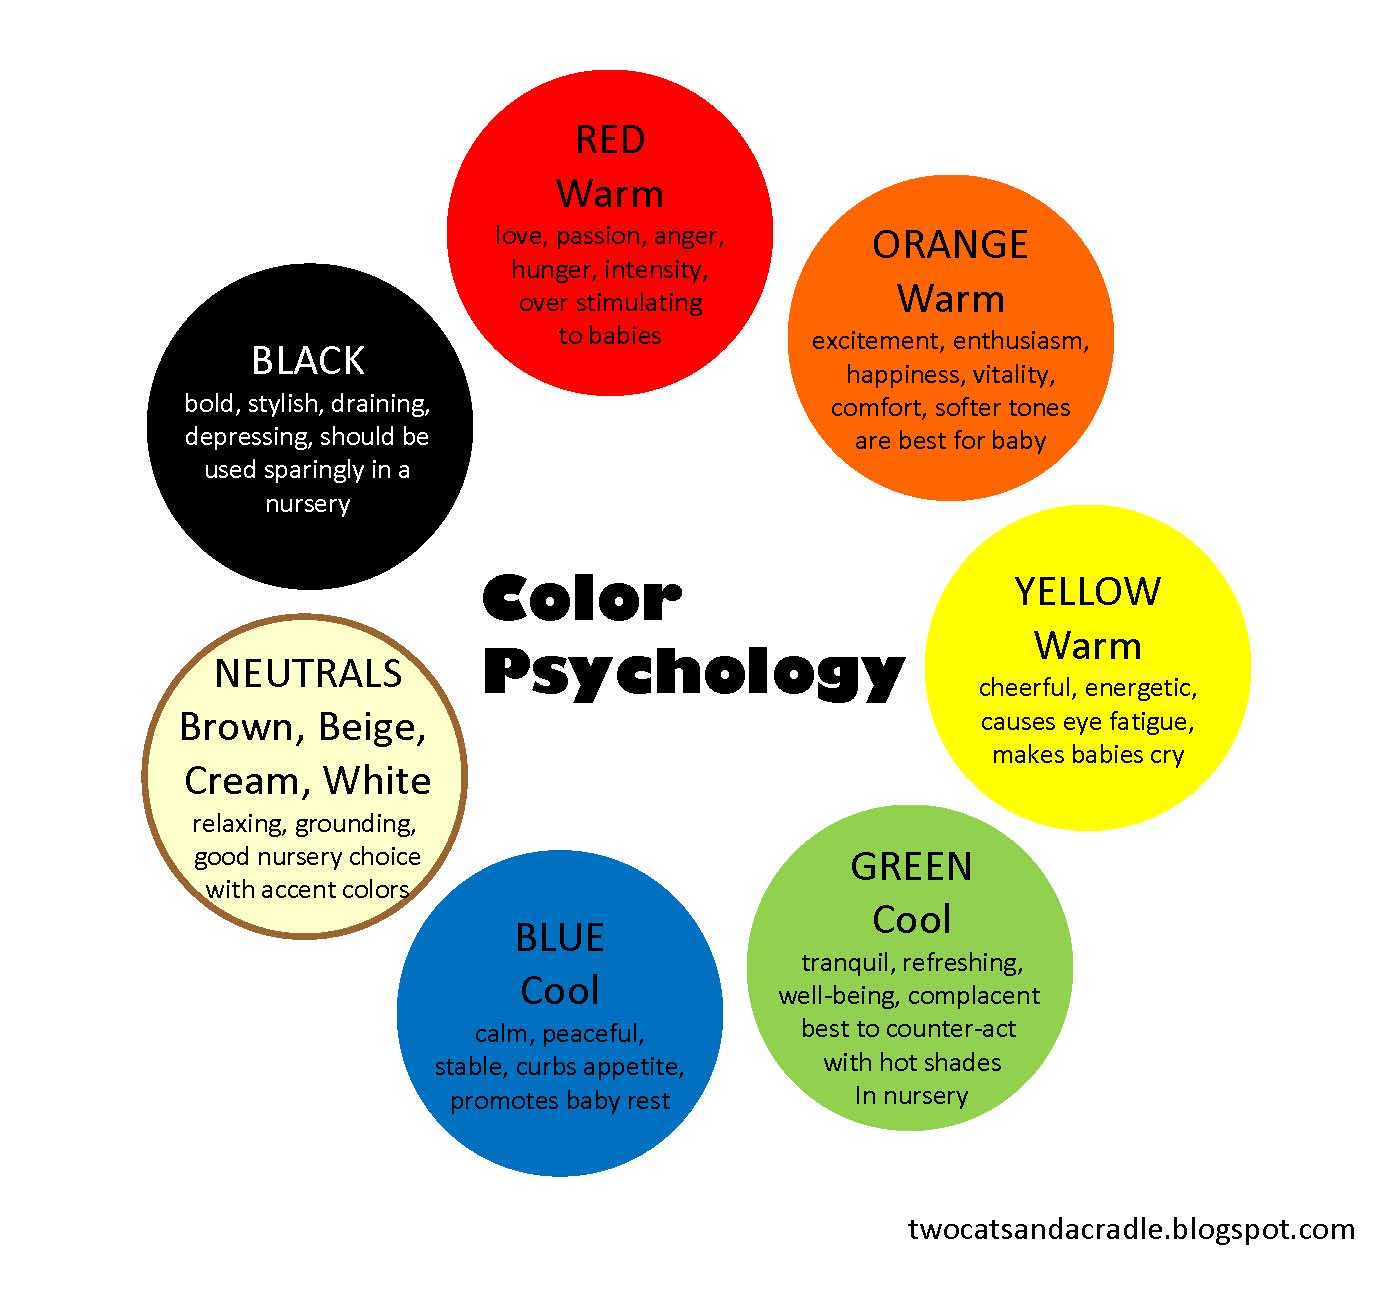 Two cats and a cradle color psychology for infants color psychology for infants nvjuhfo Choice Image